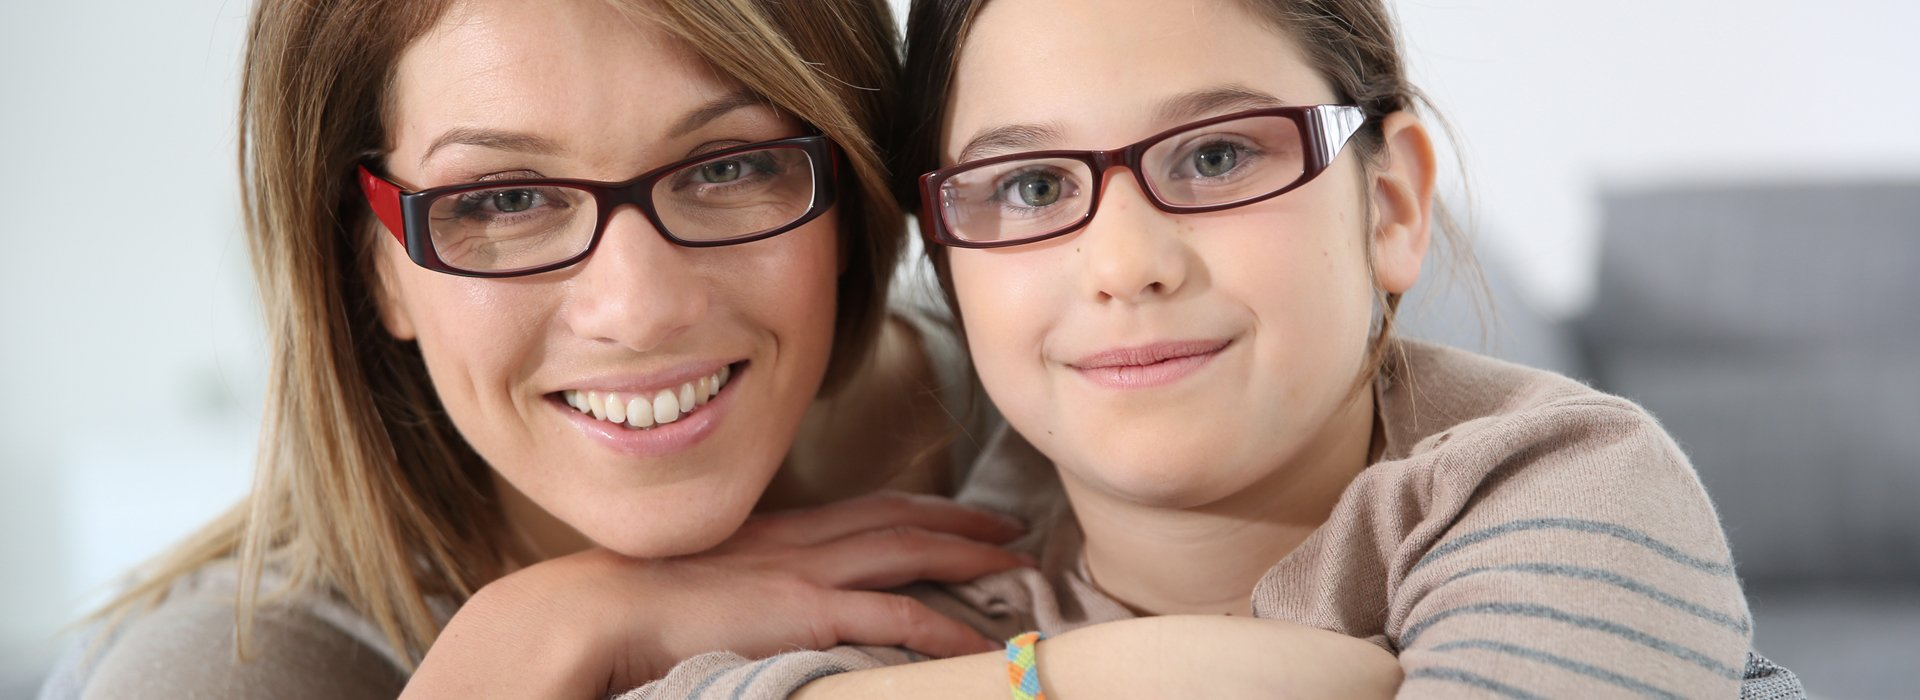 Lady and a girl with opticals